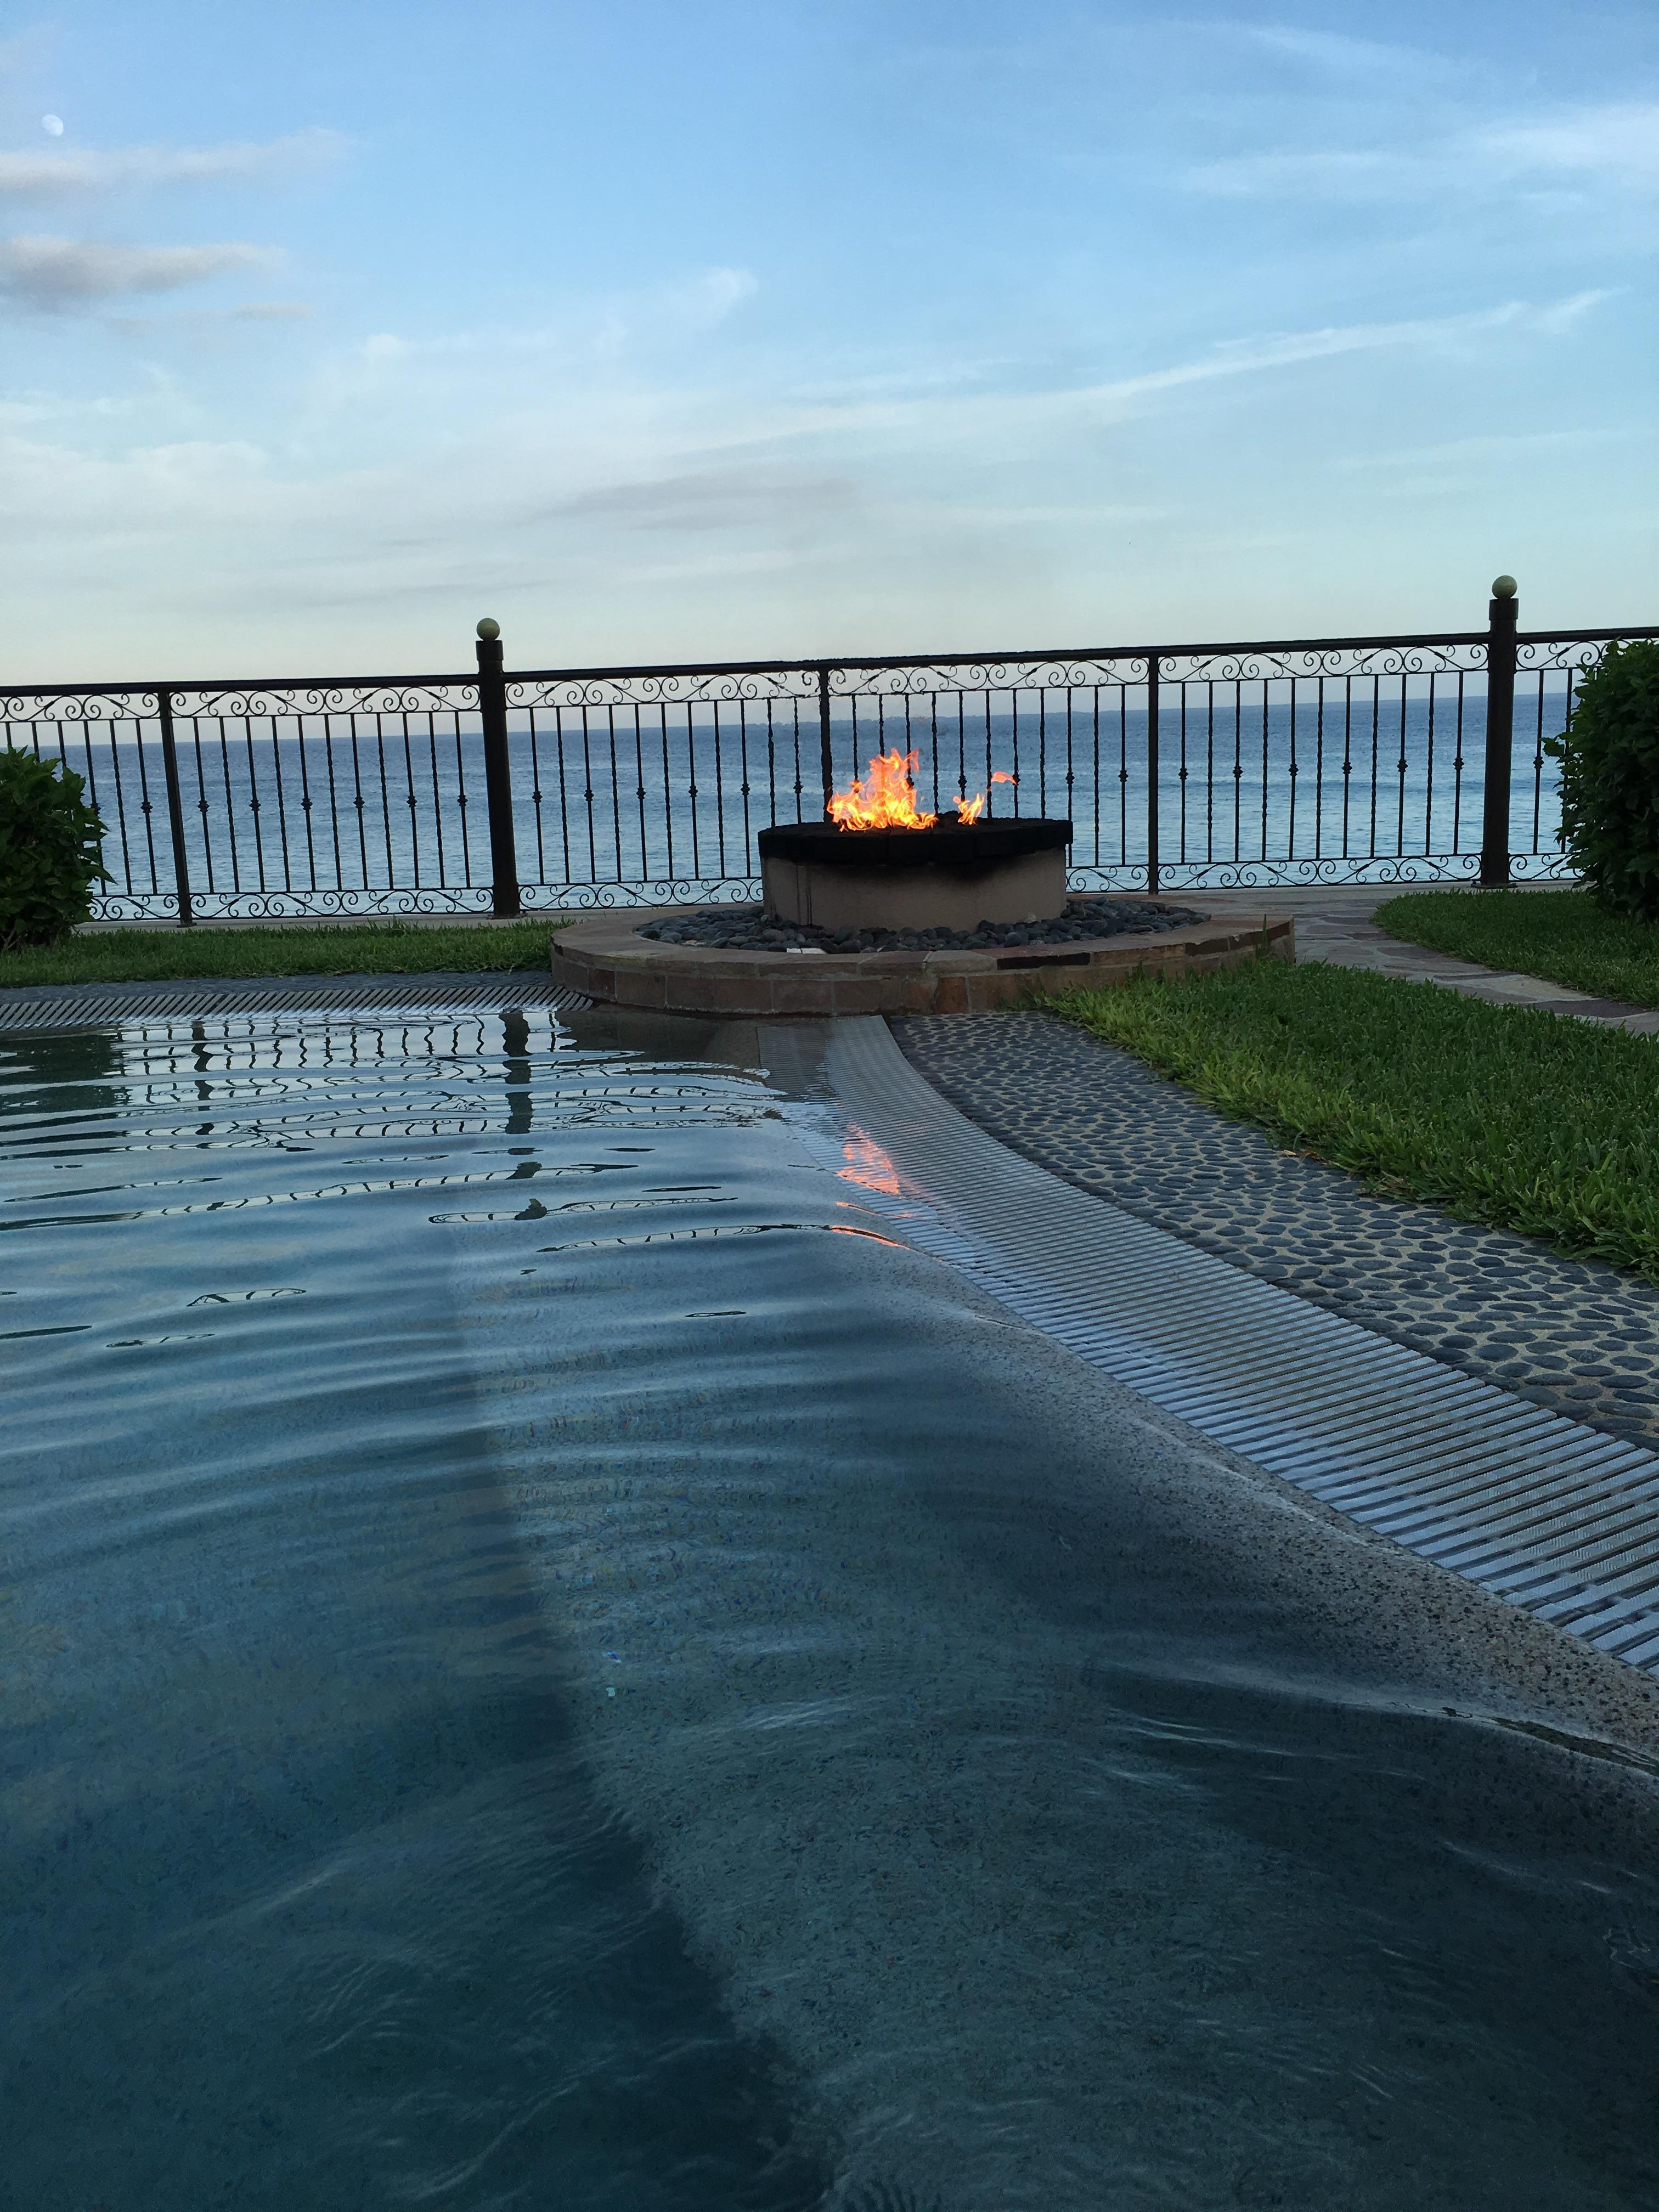 View from the main hot tub